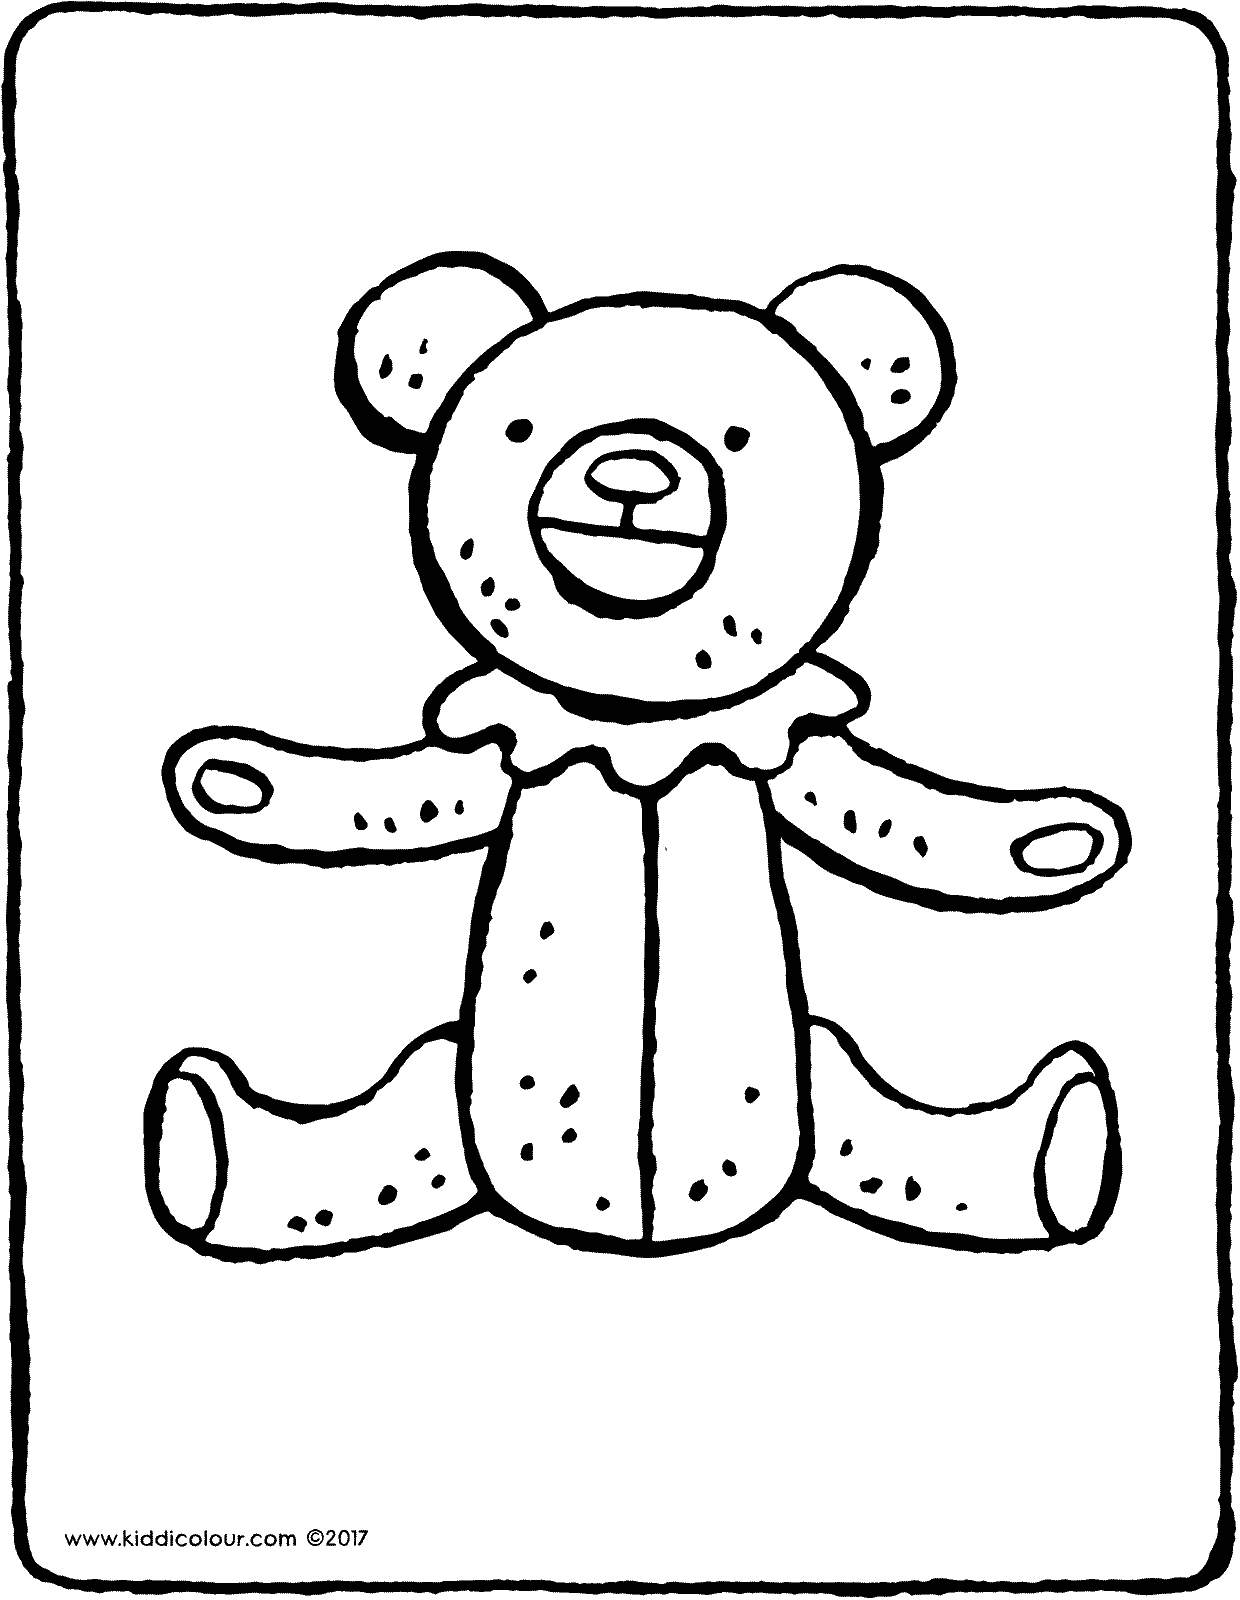 teddy bear with ruffle colouring page page drawing picture 02V